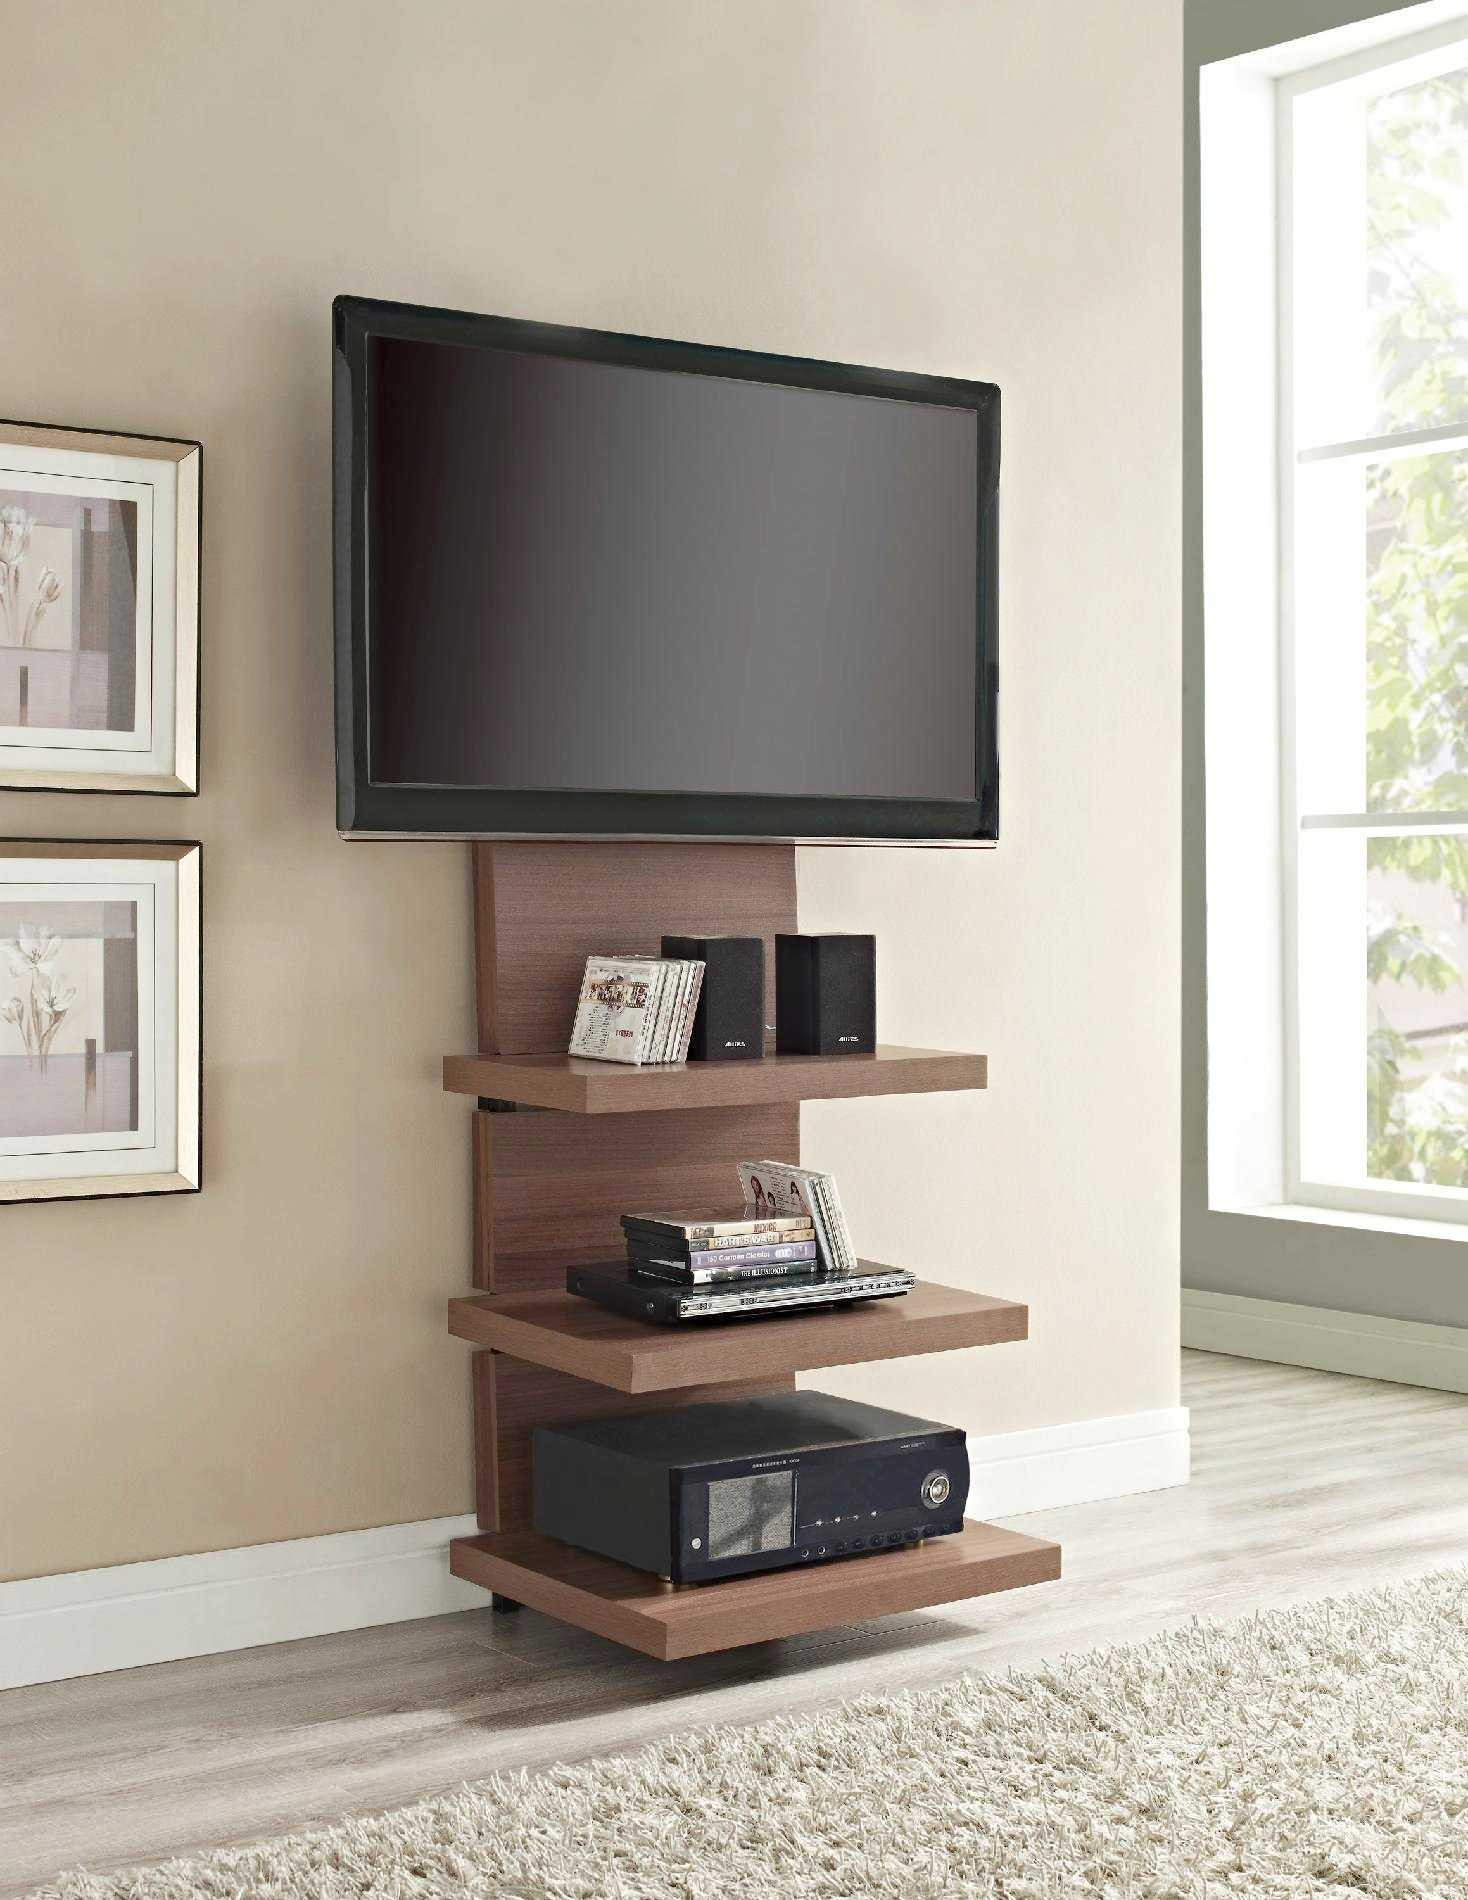 Best ideas about Tall Tv Stands For Bedroom . Save or Pin Attractive Tall Tv Stand For Bedroom Trends And Stands Now.